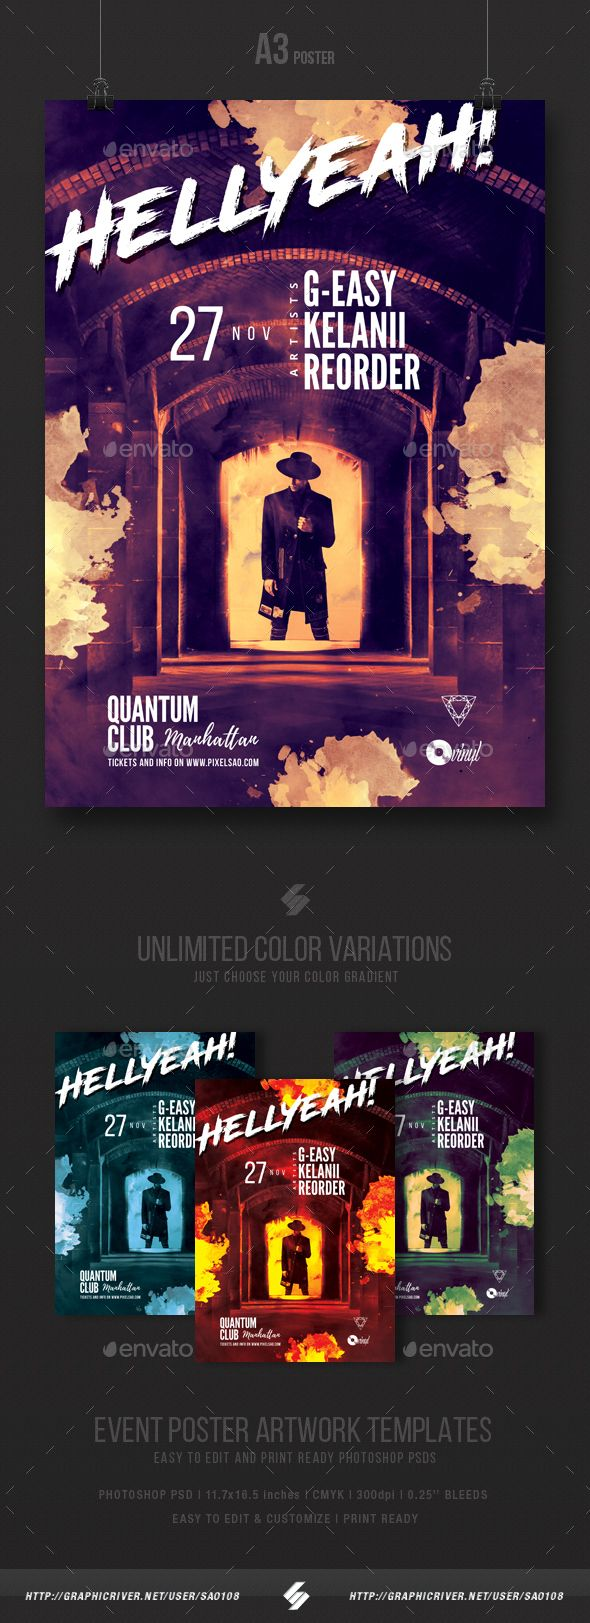 Hell Yeah - Party Flyer / Poster Artwork Template A3. Download: https://graphicriver.net/item/hell-yeah-party-flyer-poster-artwork-template-a3/18712209?ref=thanhdesign